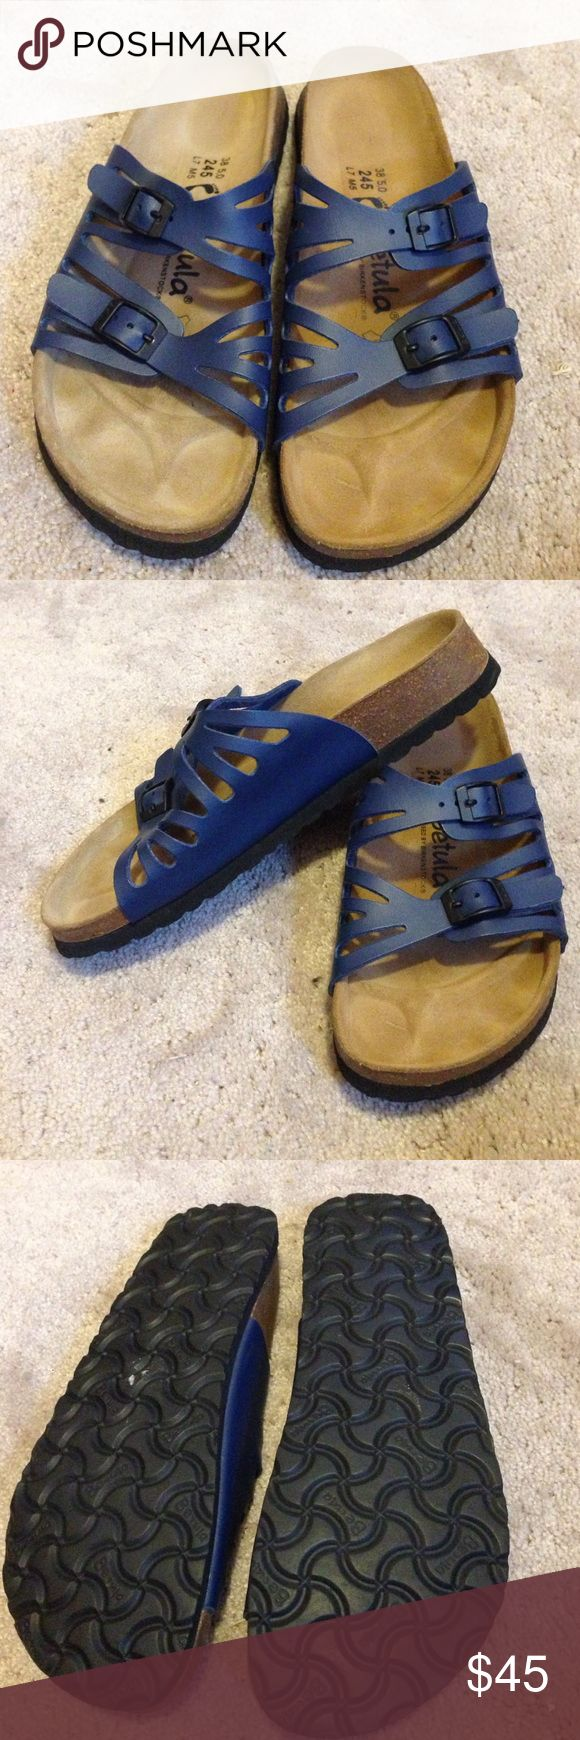 Birkenstock betula sandals Only worn once! Great condition. Very comfy blue sandals, womens size 38/7 Birkenstock Shoes Sandals